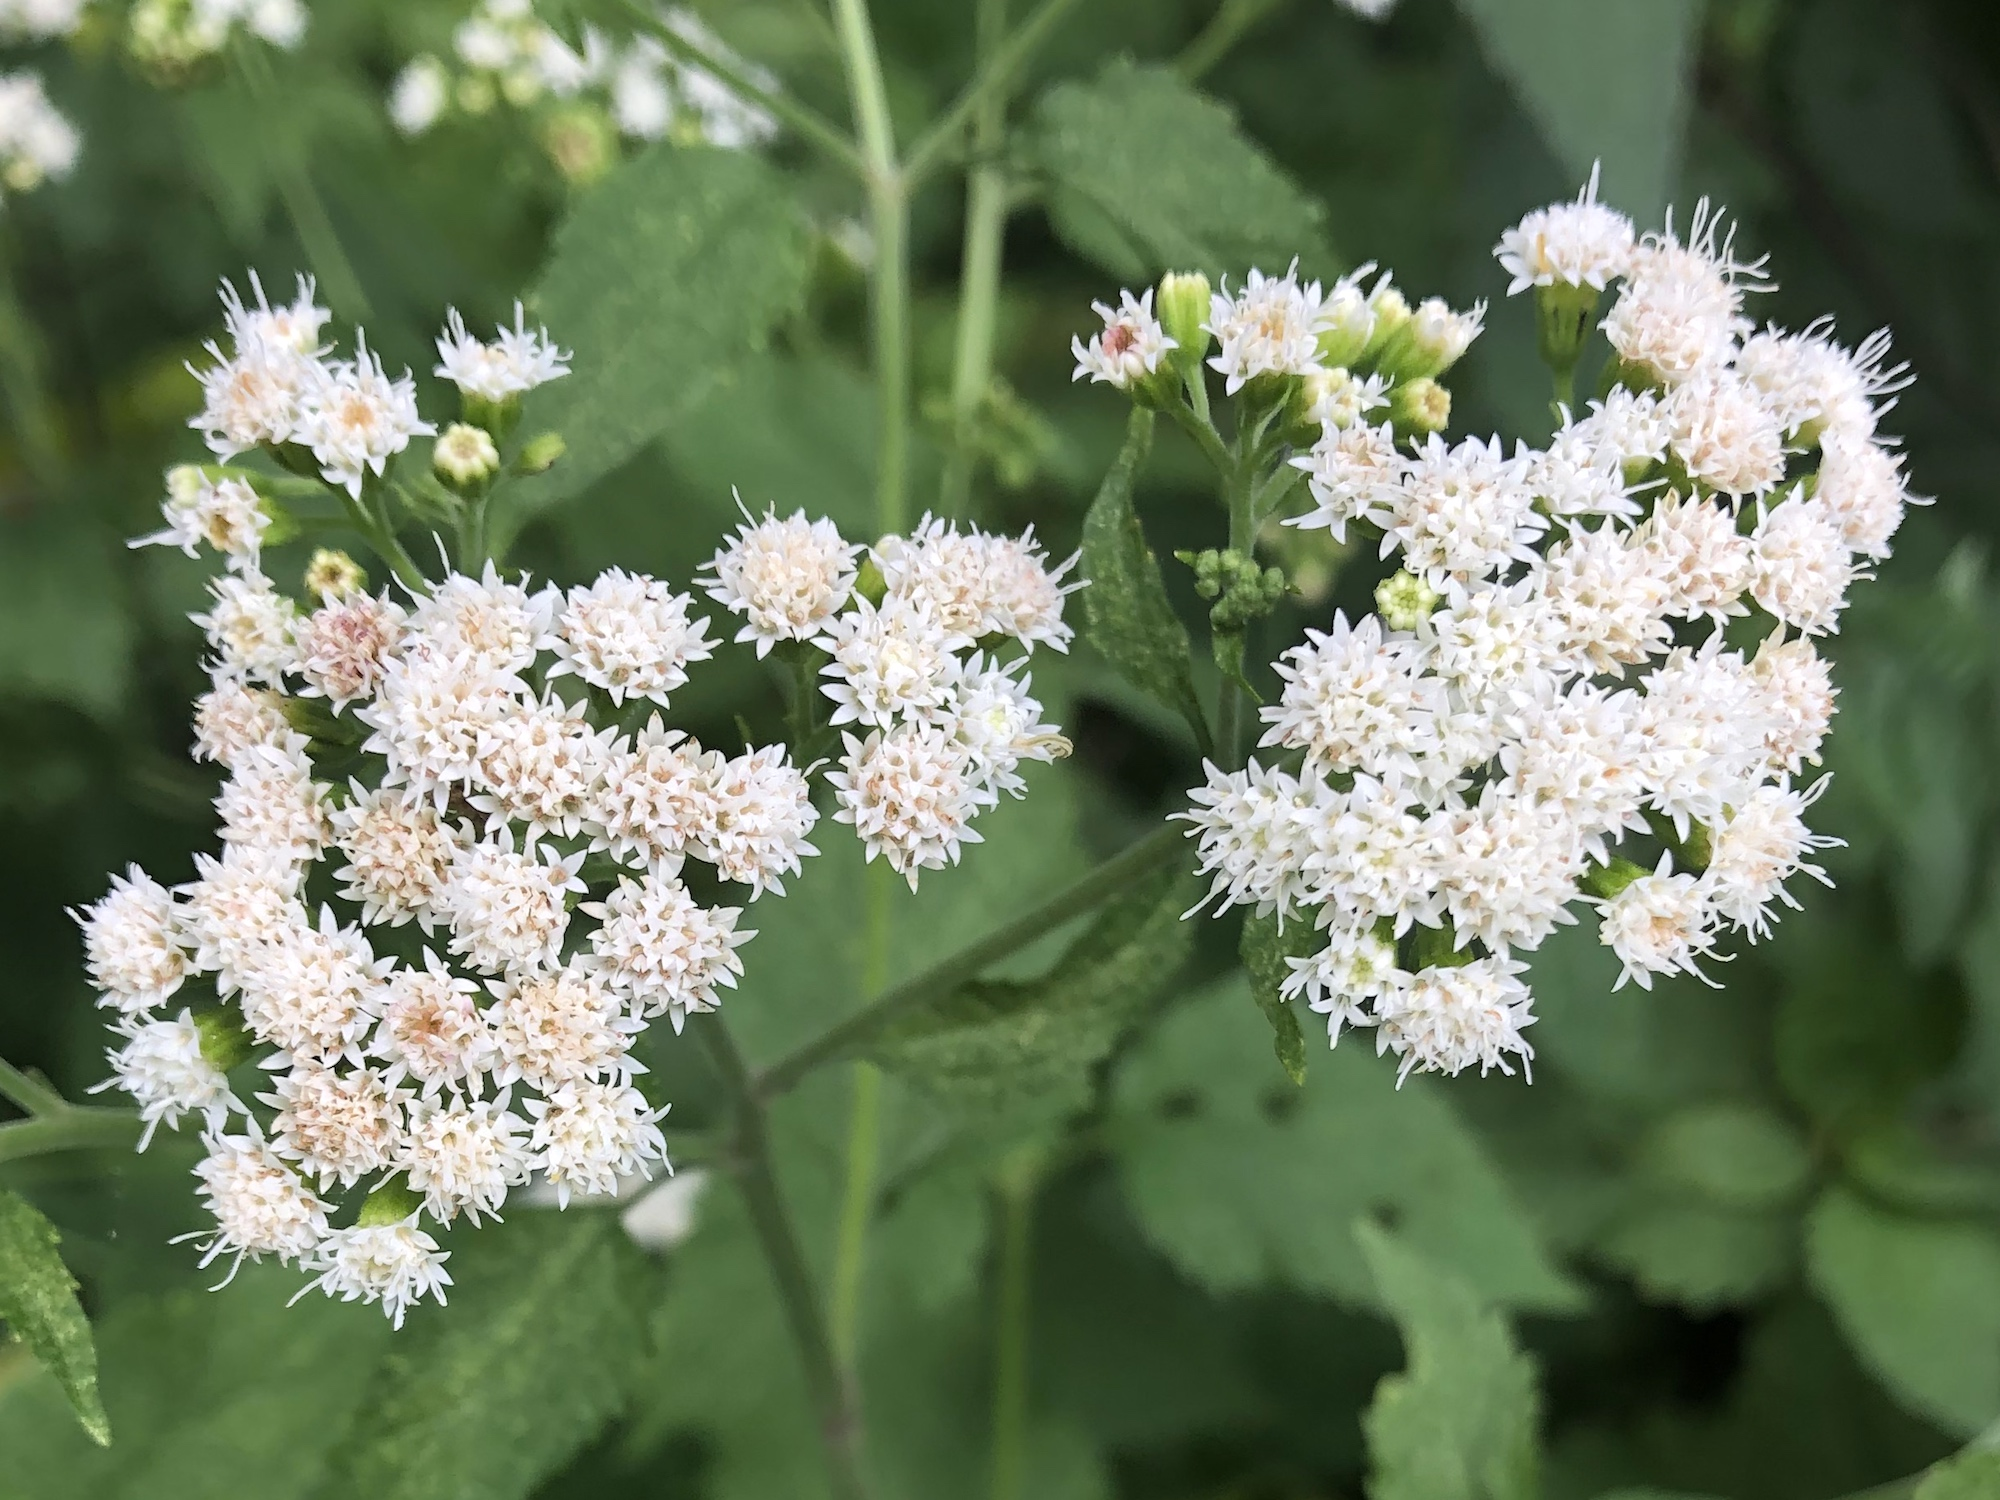 White Snakeroot along shore of Ho-Nee-Um Pond in Madison, Wisconsin on August 21, 2019.